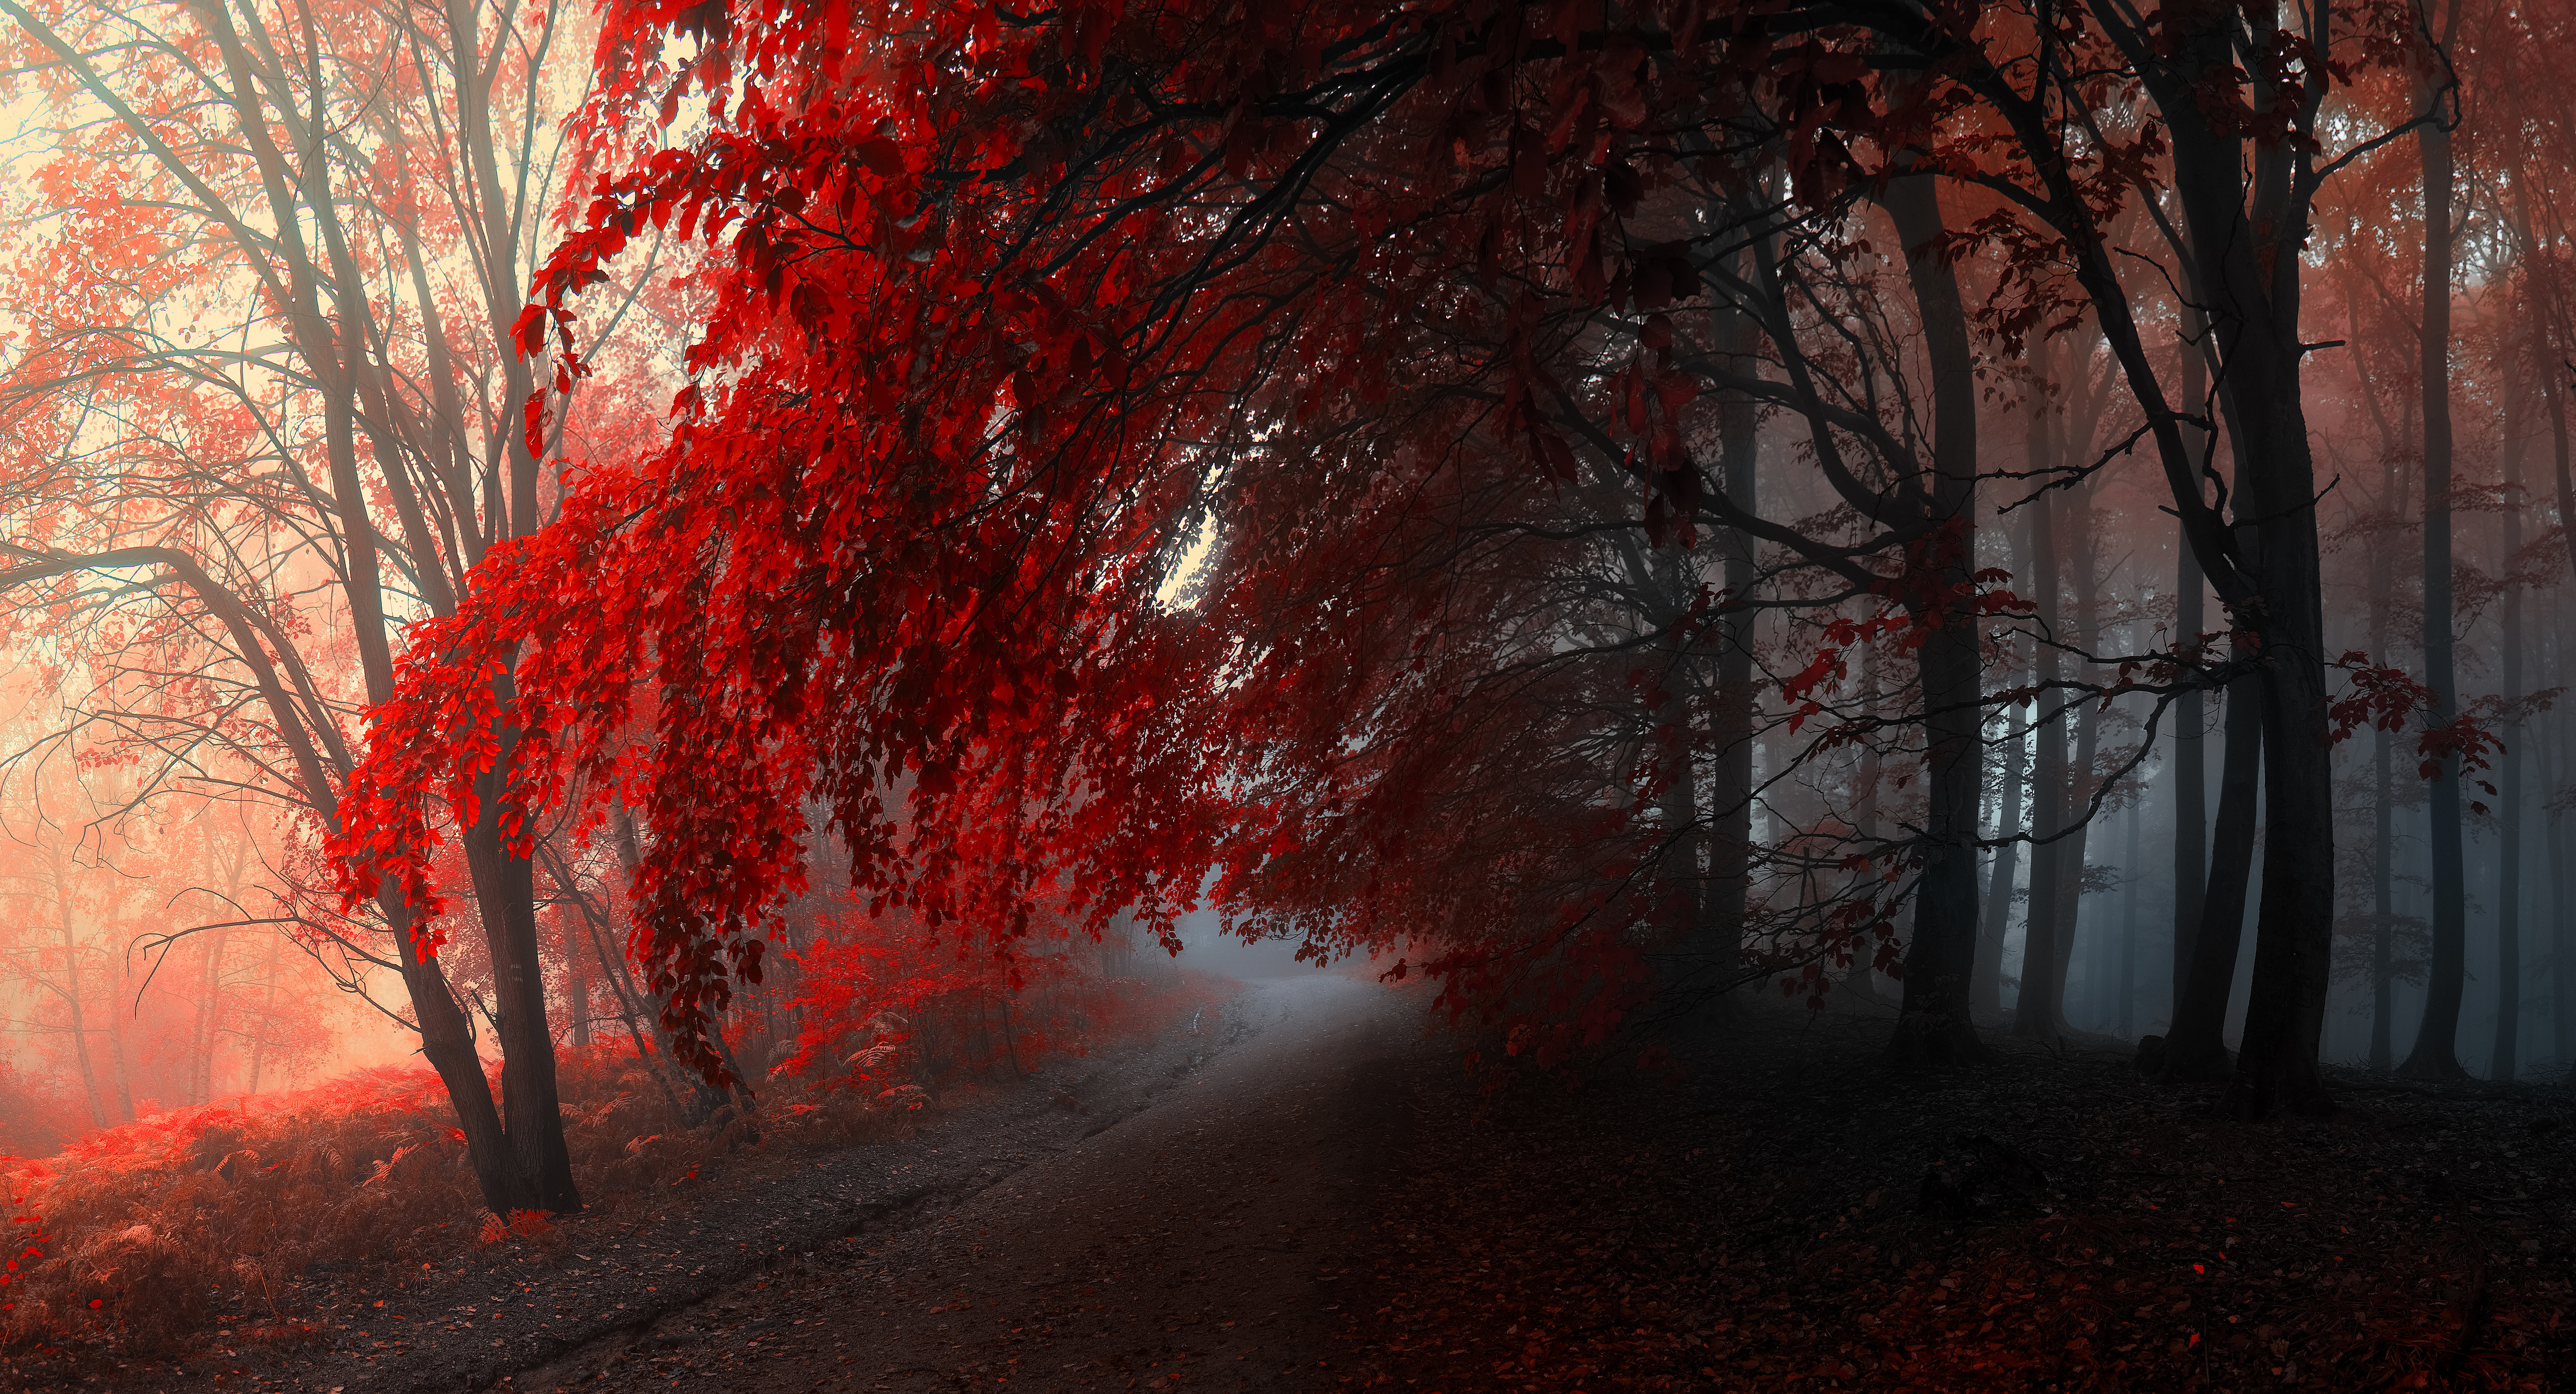 Hd Beautiful Forest Wallpaper Posted By Michelle Tremblay